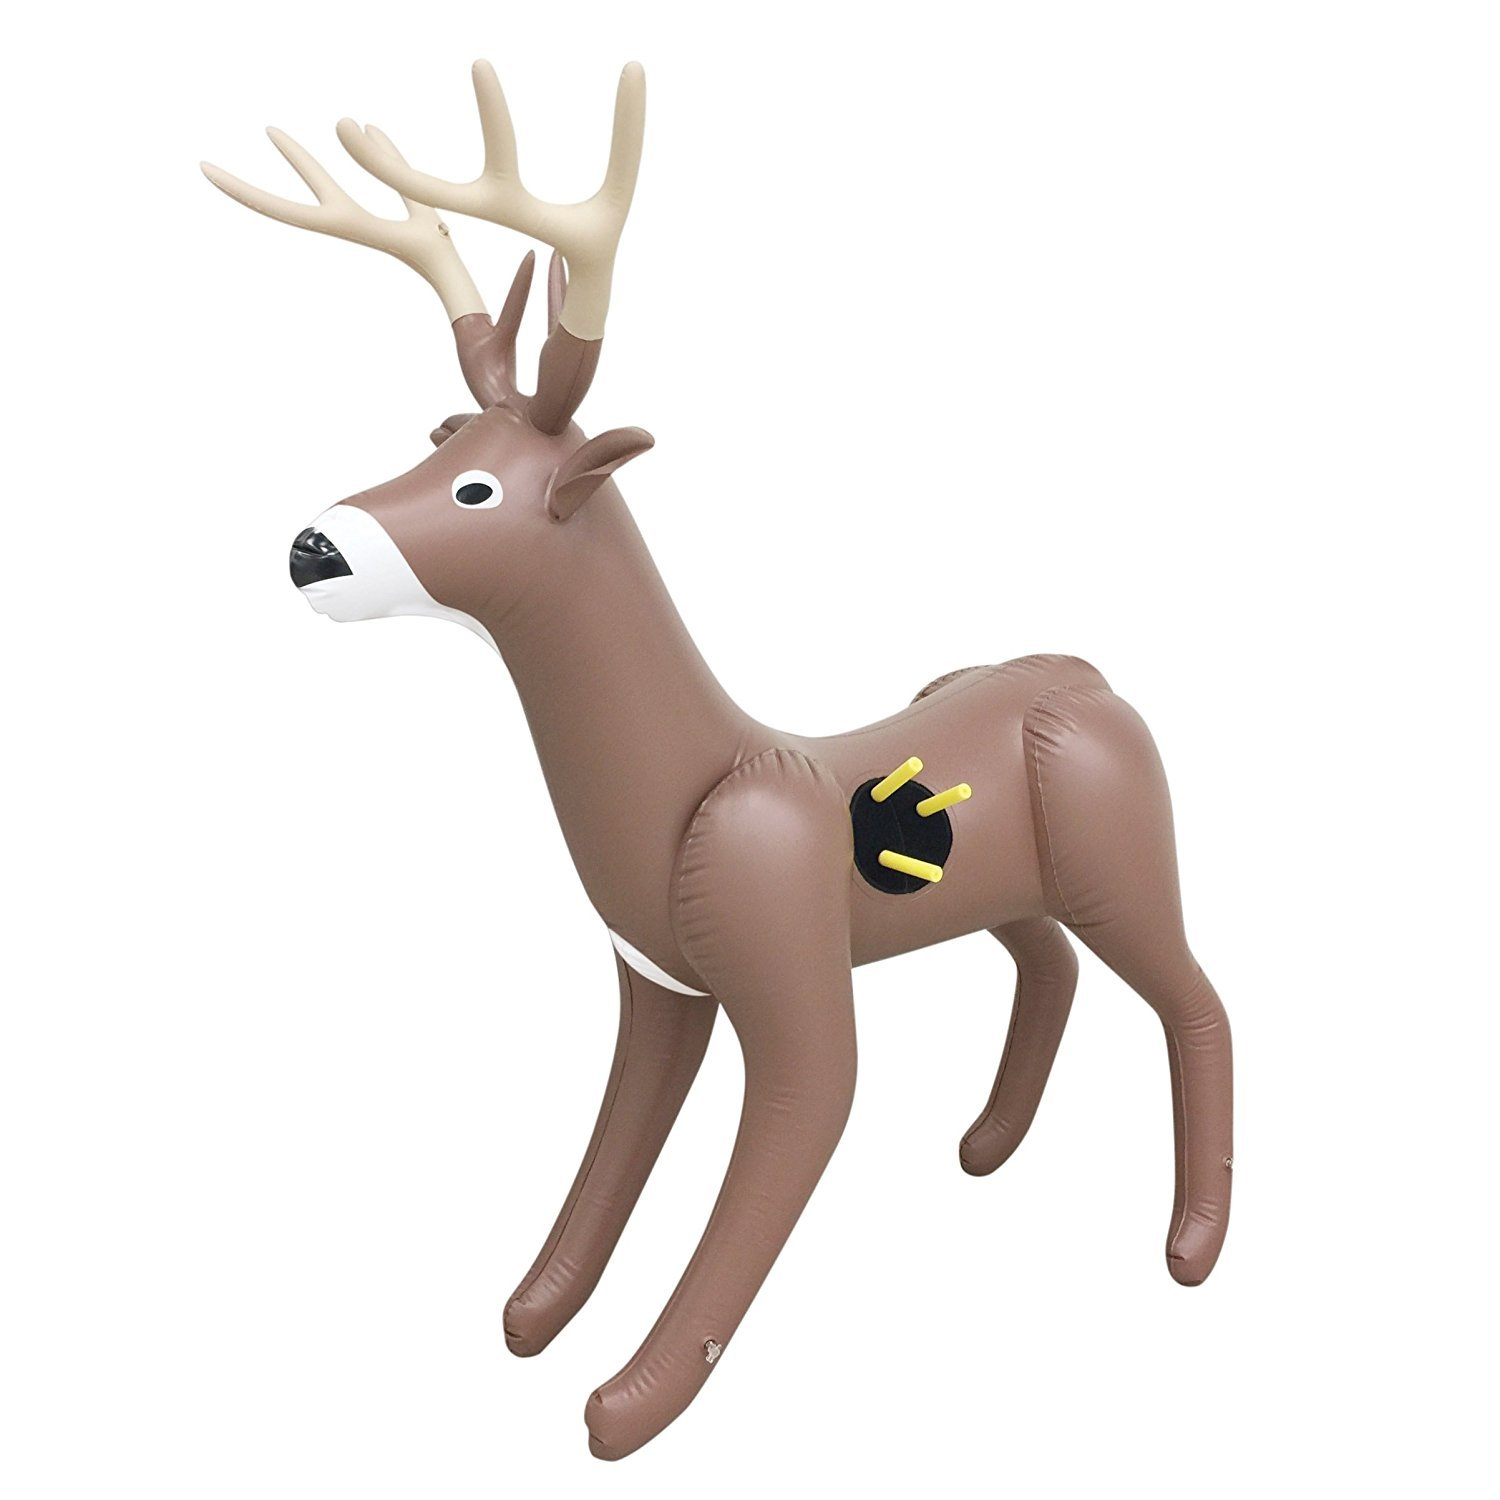 Nxt Generation 3D Inflatable Deer Target - Archery Target Practice - Life Size Inflatable Buck for Kids - Suitable for Indoor and Outdoor Play - for Hook and Loop Tipped Foam Darts